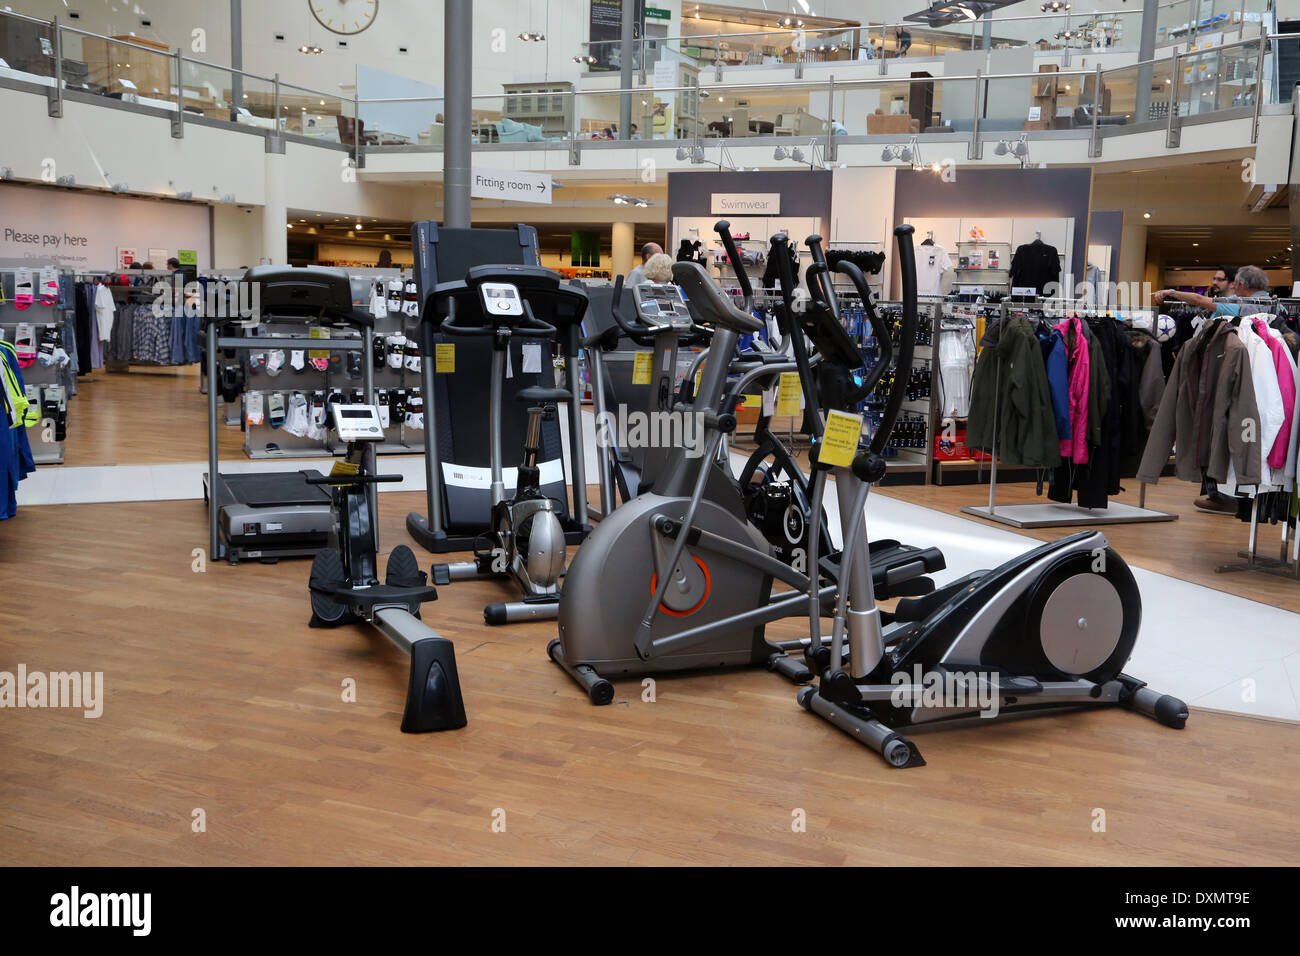 Kingston Upon Thames Surrey John Lewis Store Sports Equipment Cycling Machines, Treadmills, Rowing Machine And Cross Trainers - Stock Image